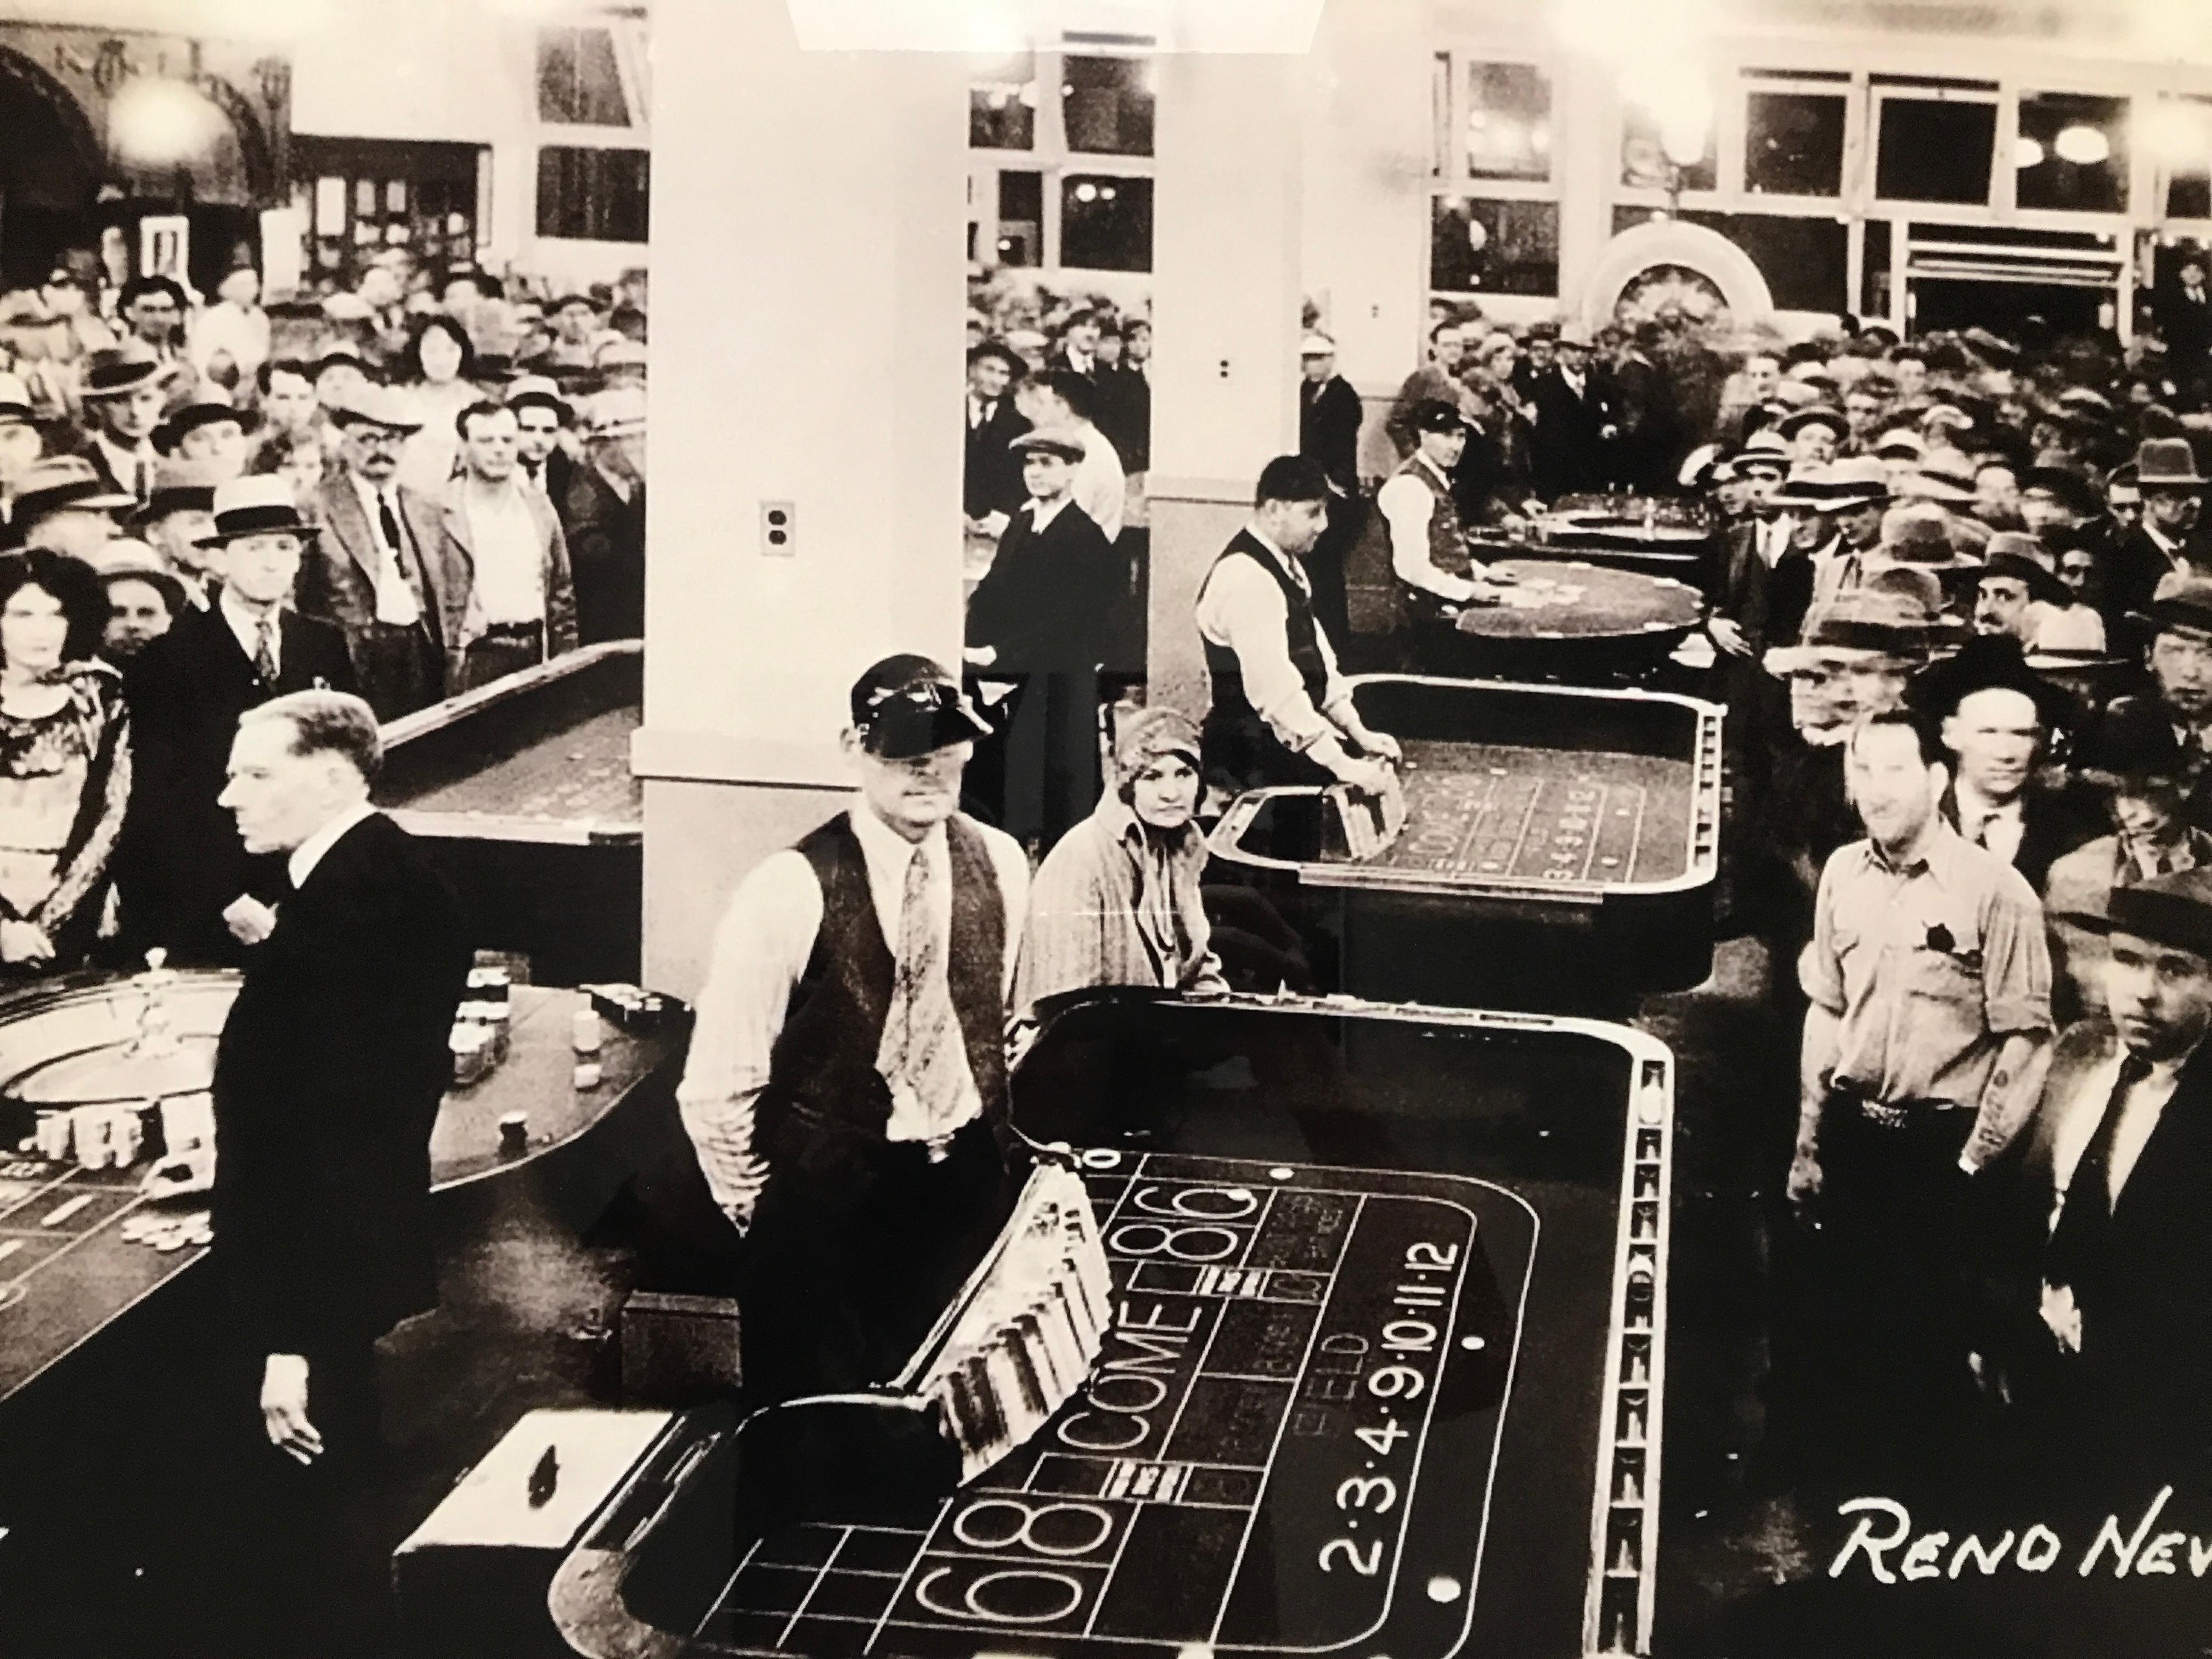 The bank Club was a popular gambling hall. This photo documents the grand opening of the club's newly remodeled, ground floor casino a few weeks after the legalization of open gambling in Nevada. (Photo courtesy: Reno Divorce Society)